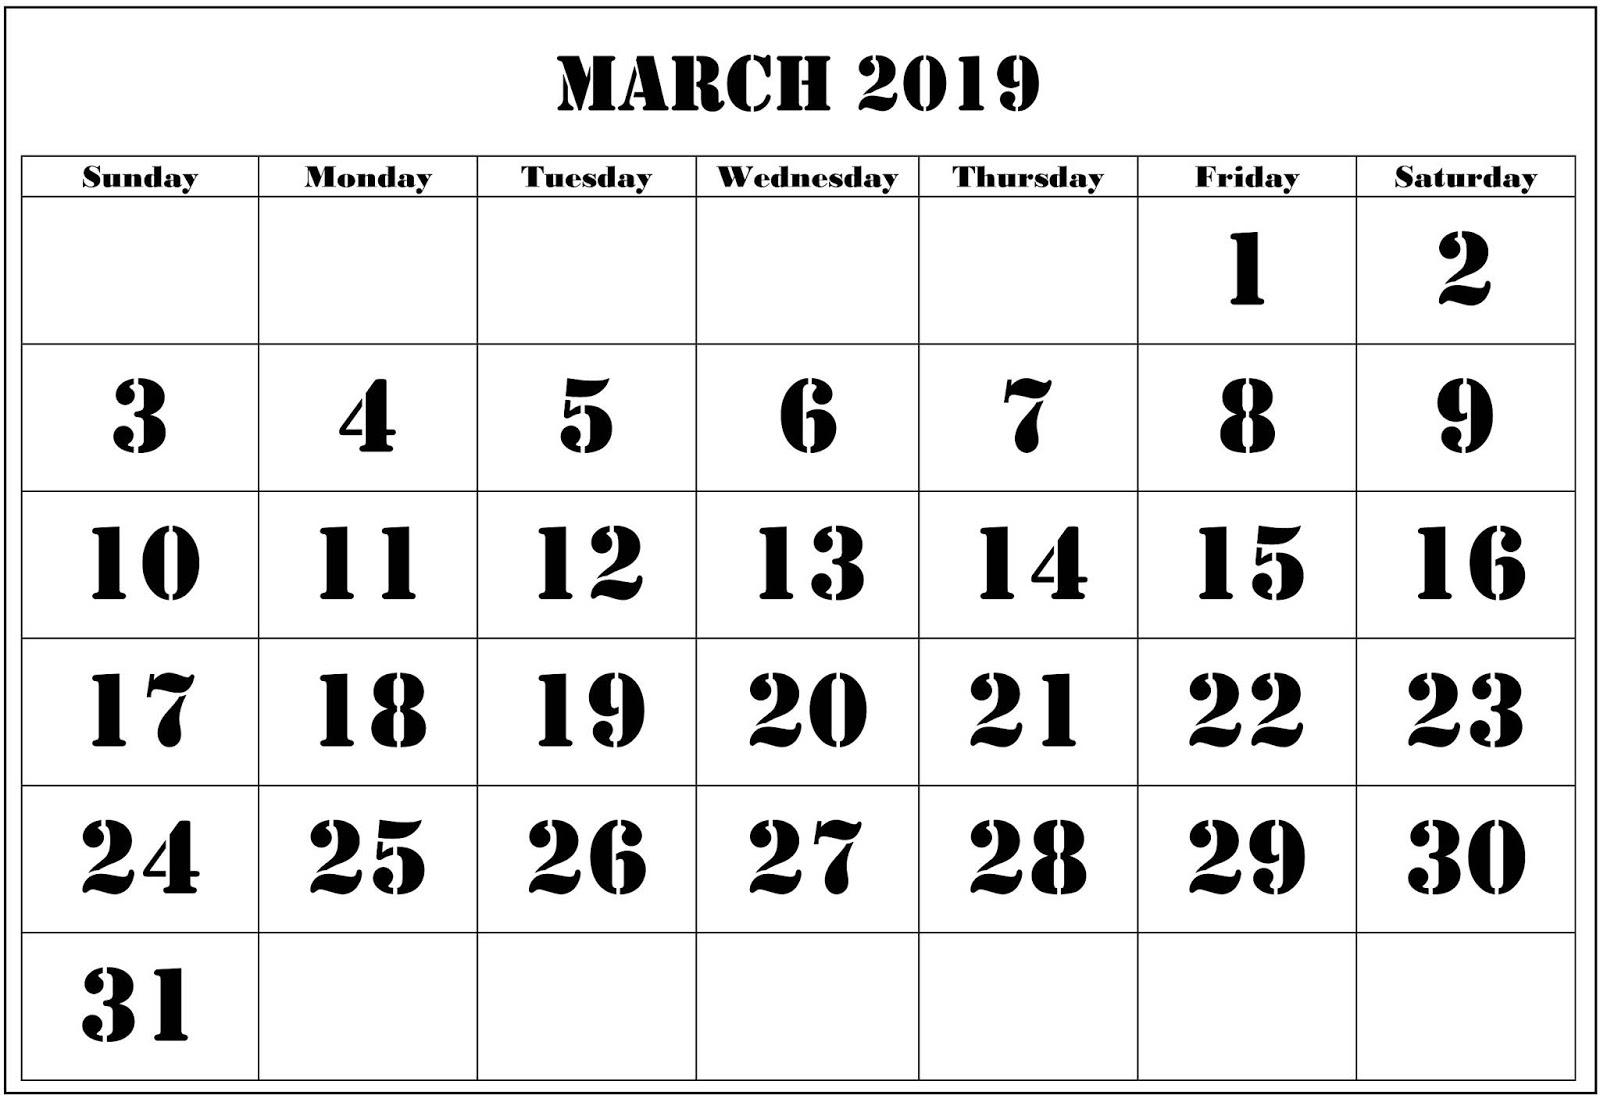 March 2019 Calendar Template Download